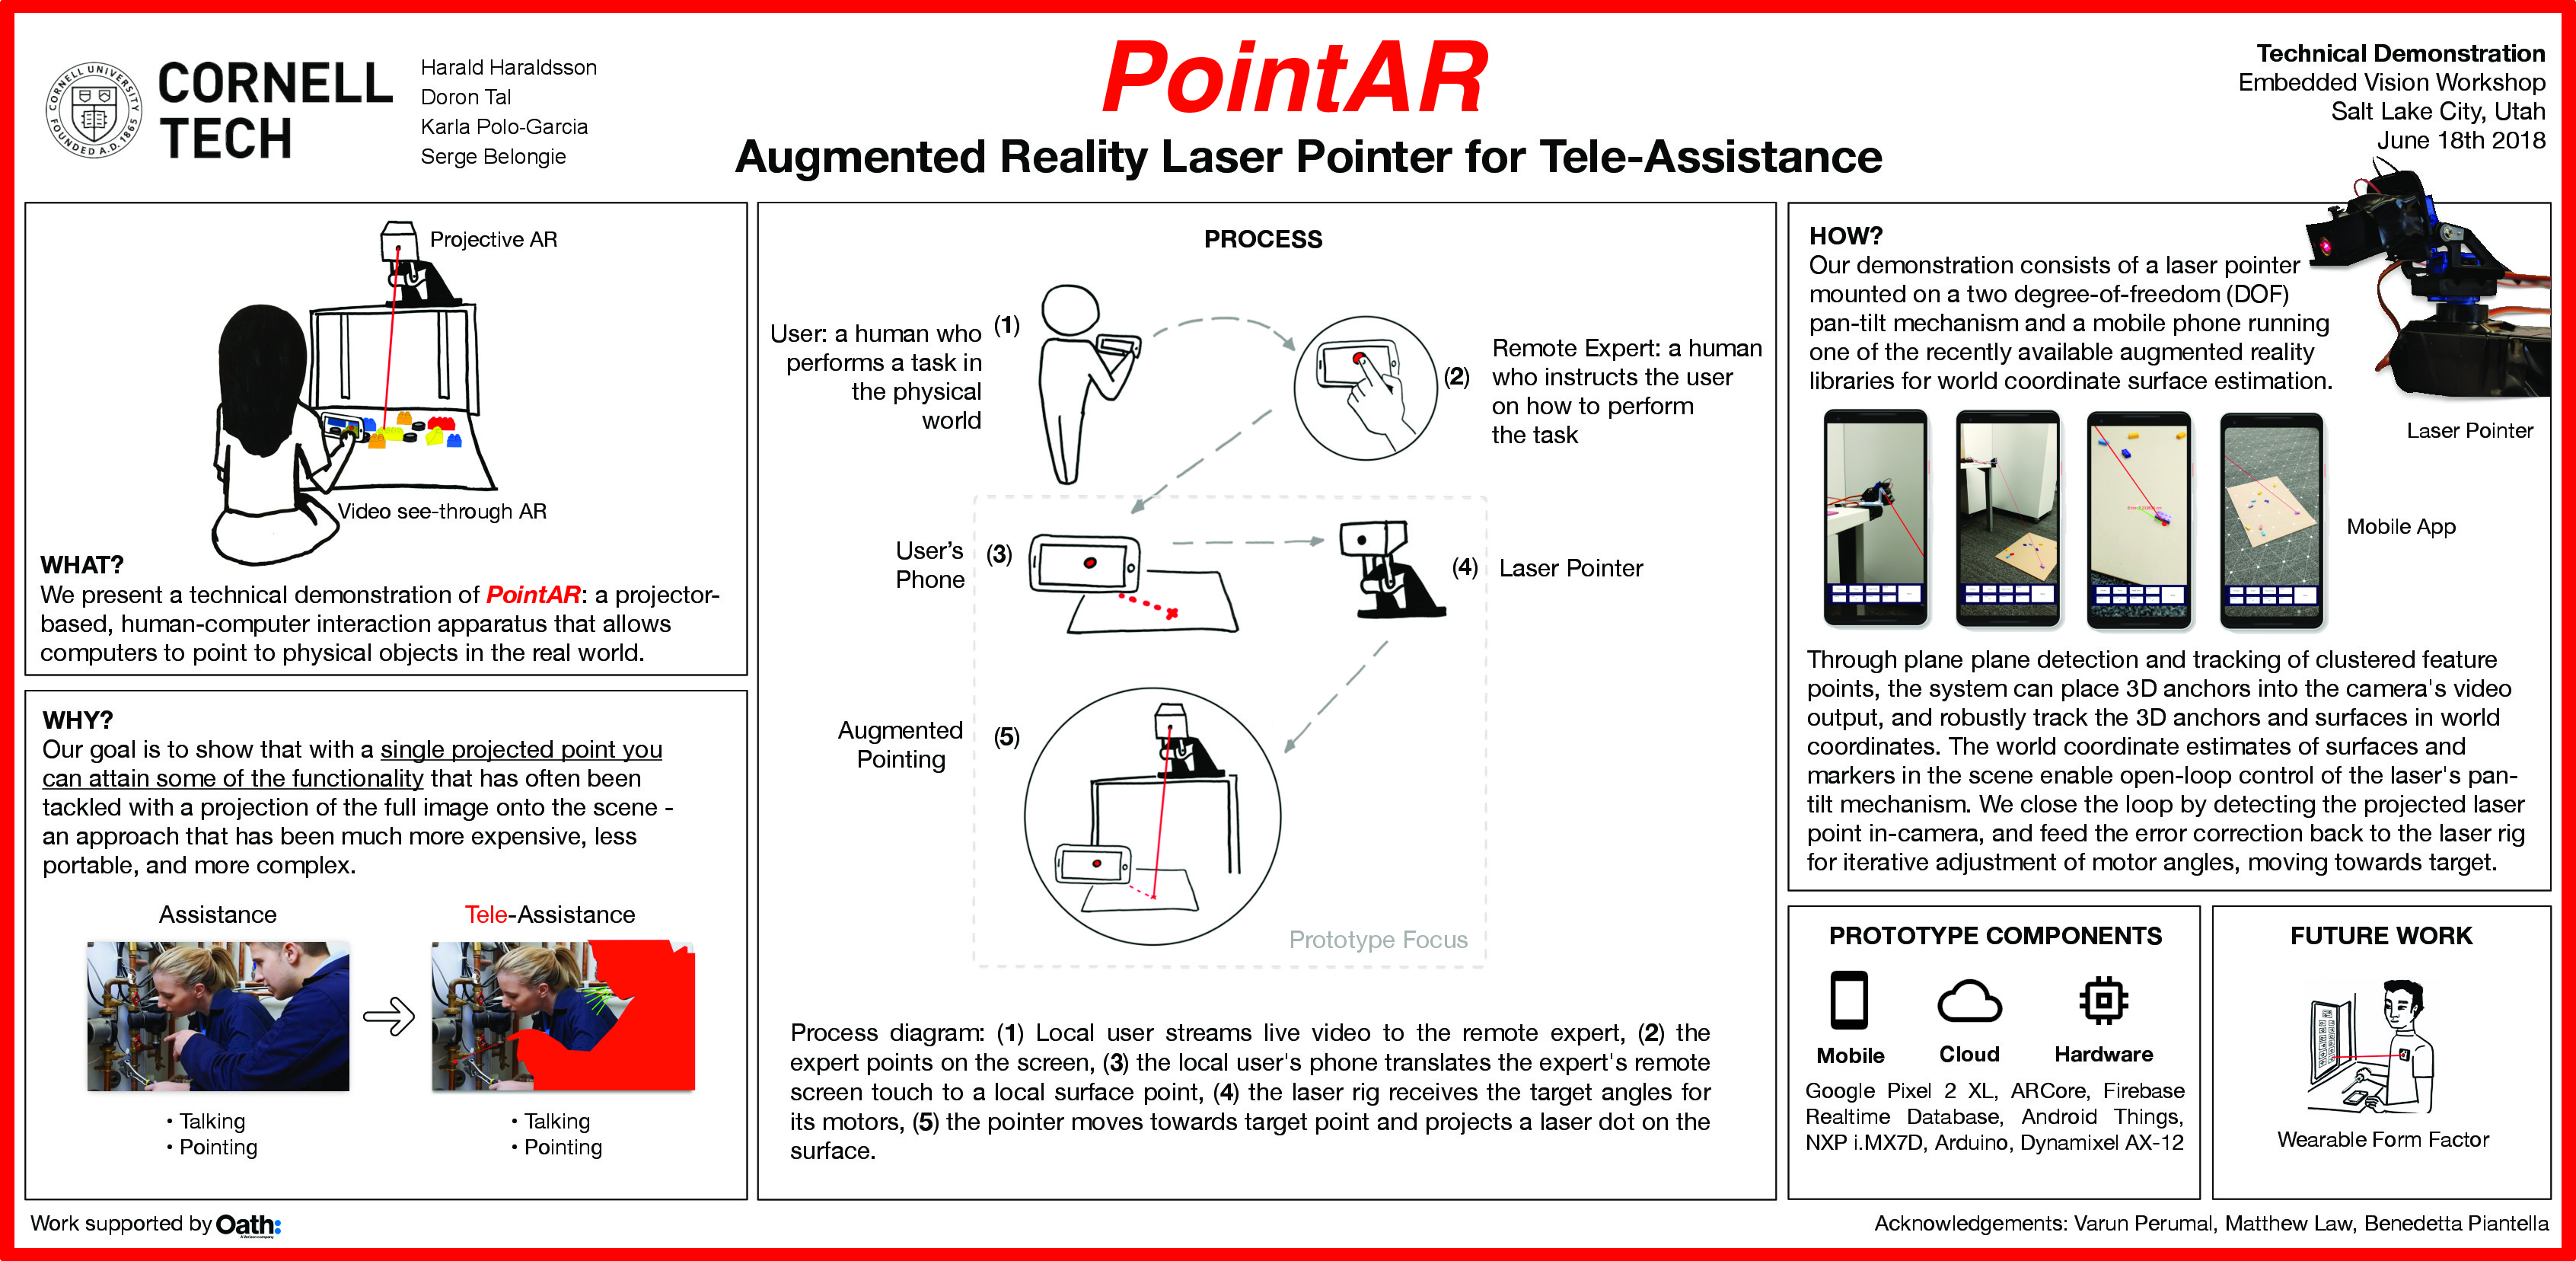 PointAR: Augmented Reality for Tele-Assistance